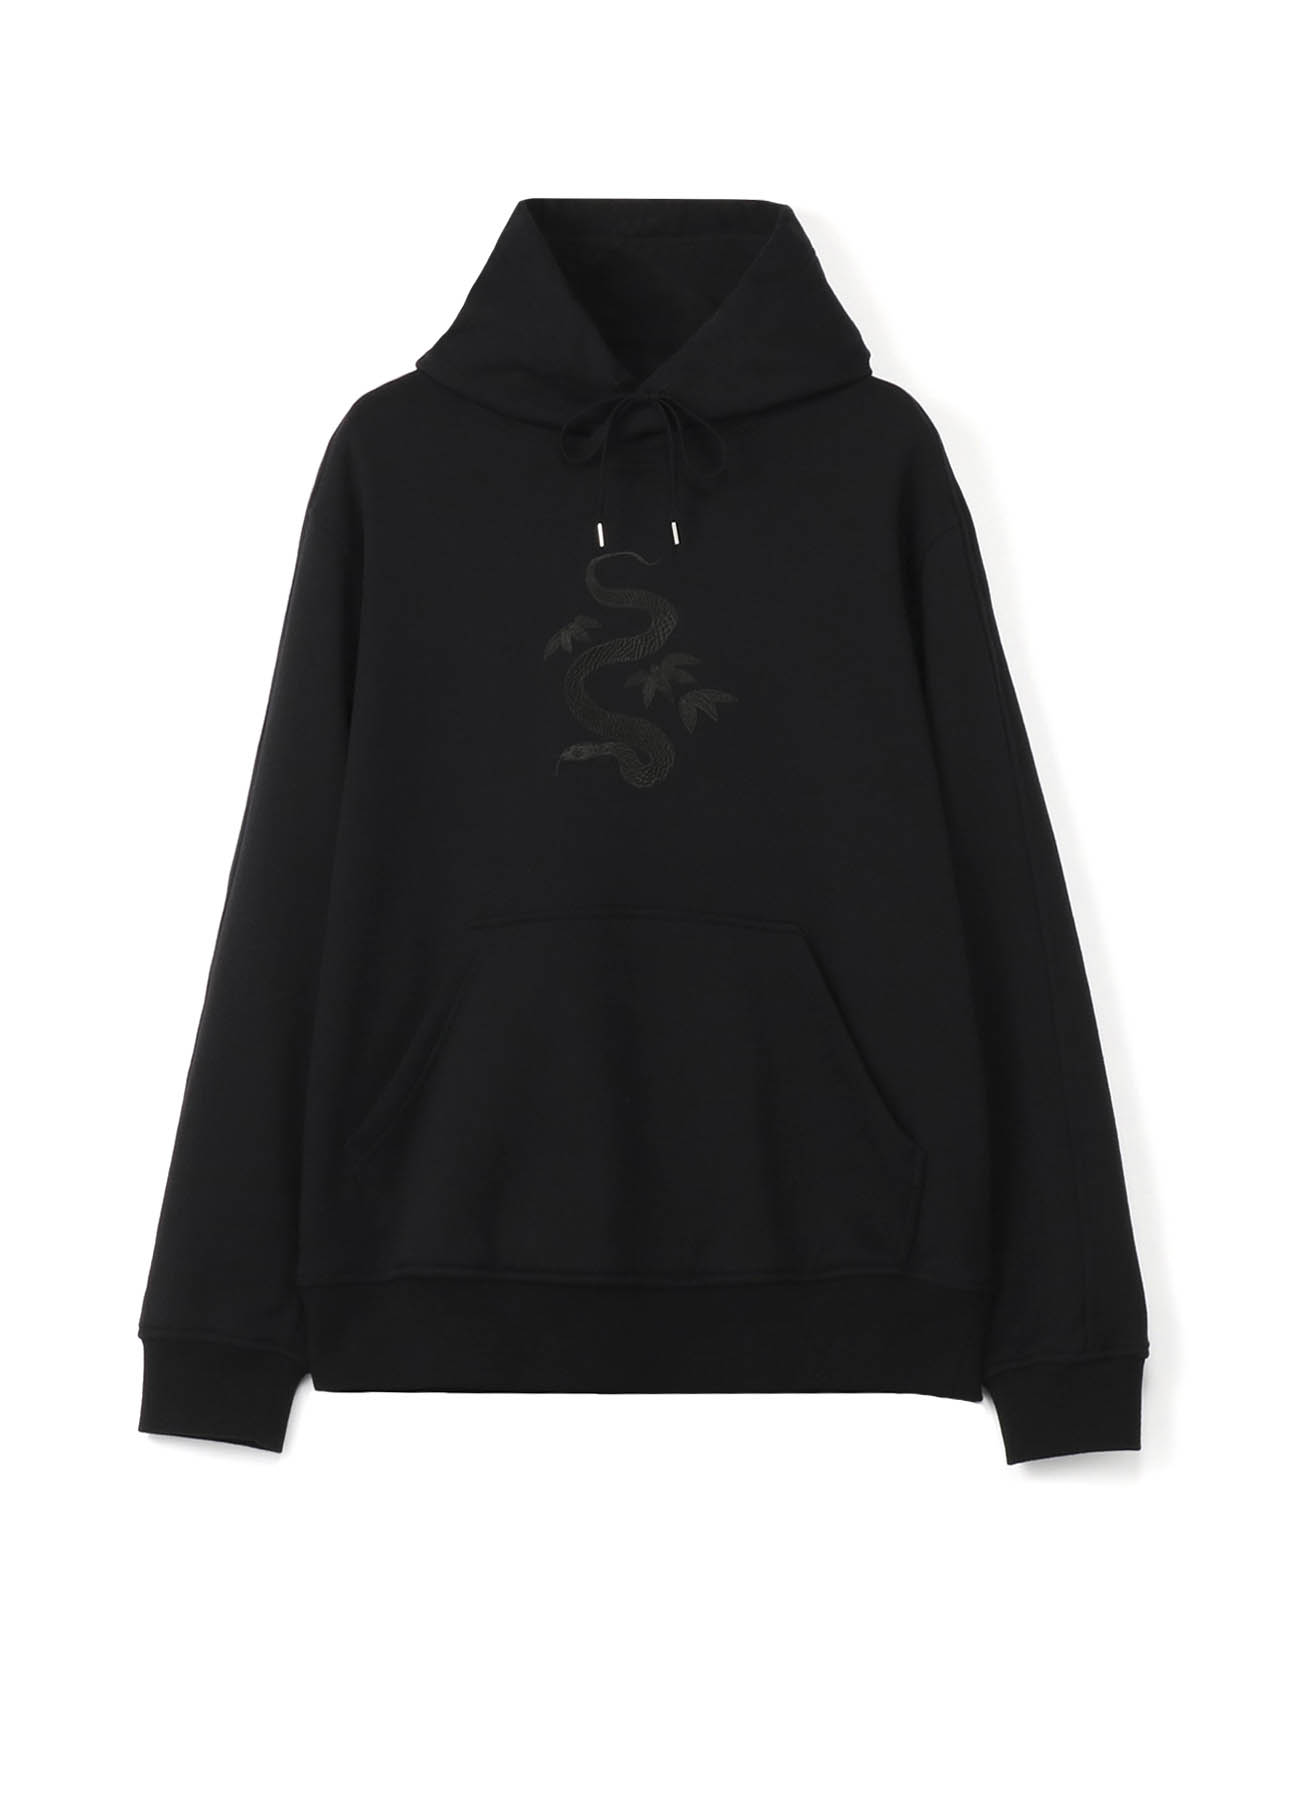 French Terry Stitch Work The Three Snake-Leaves Embroidery Hoodie